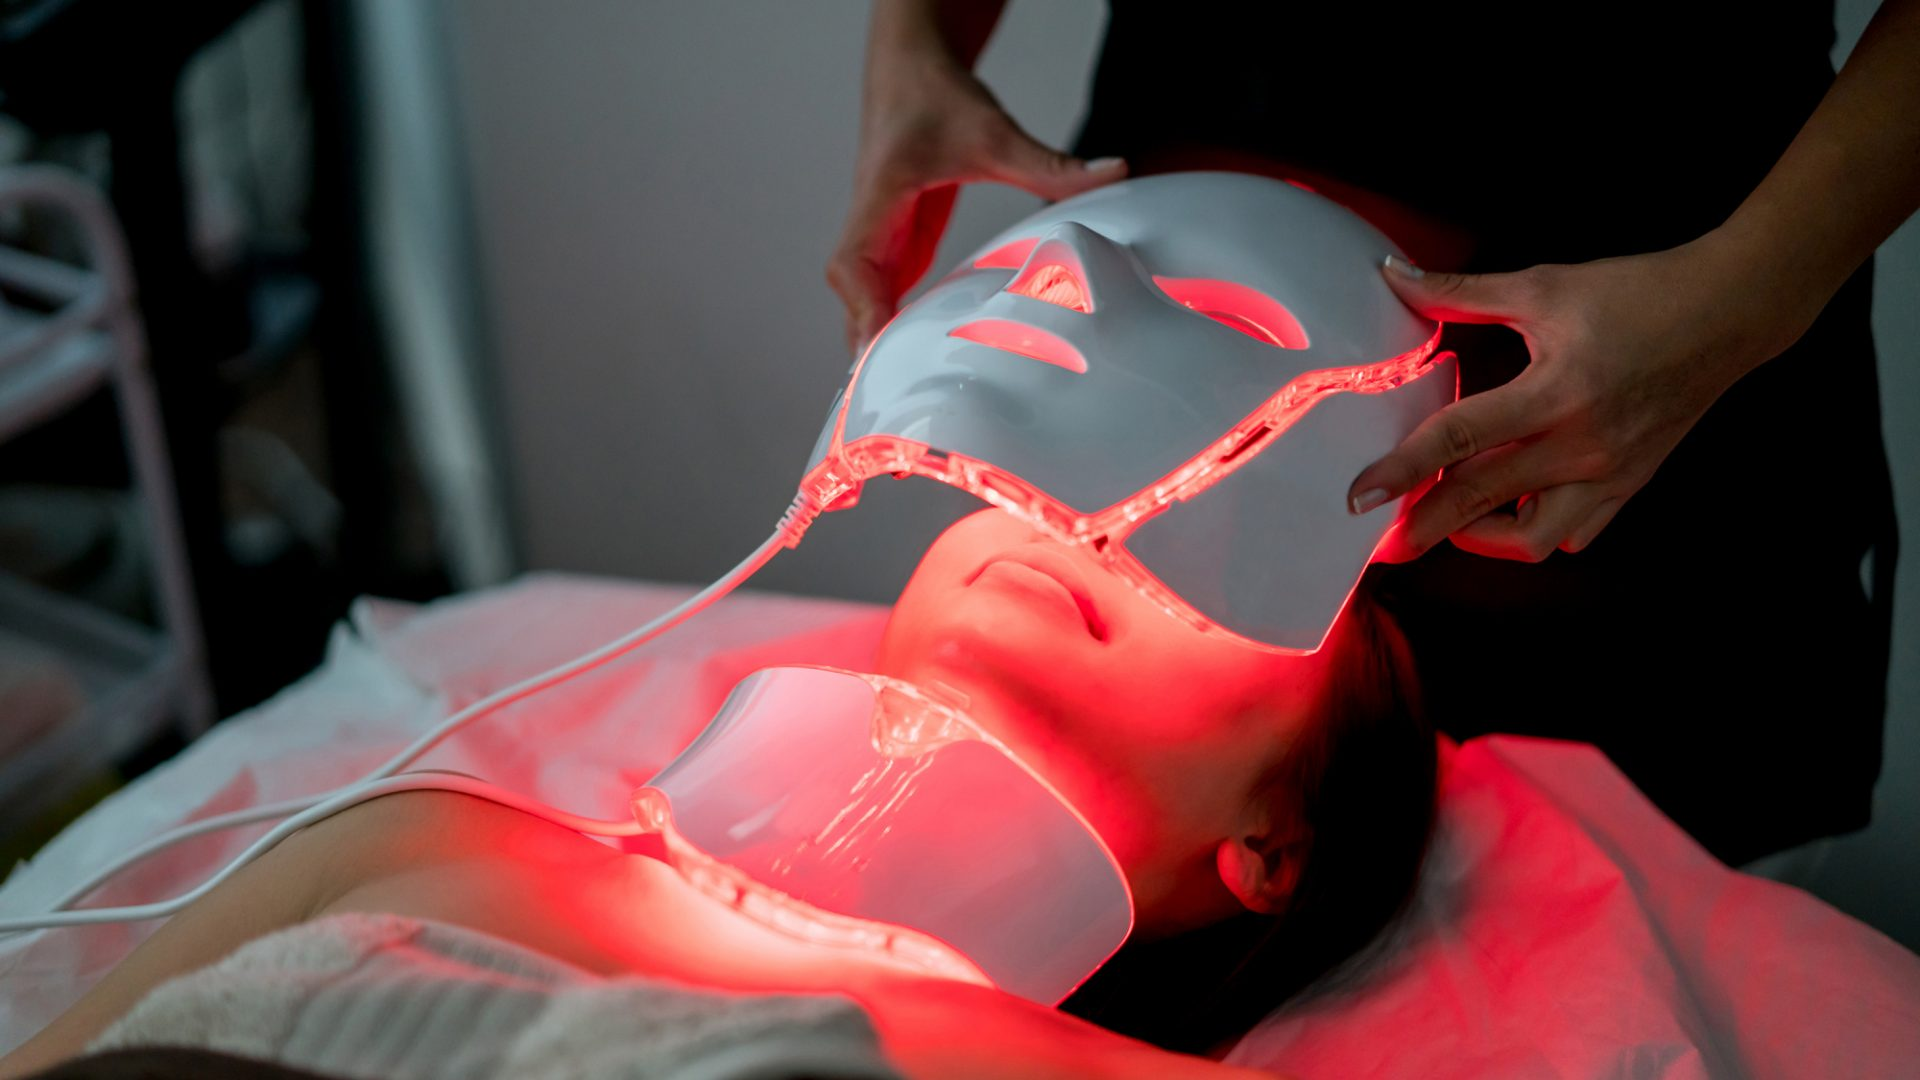 A photo of a person undergoing a photonics skin treatment